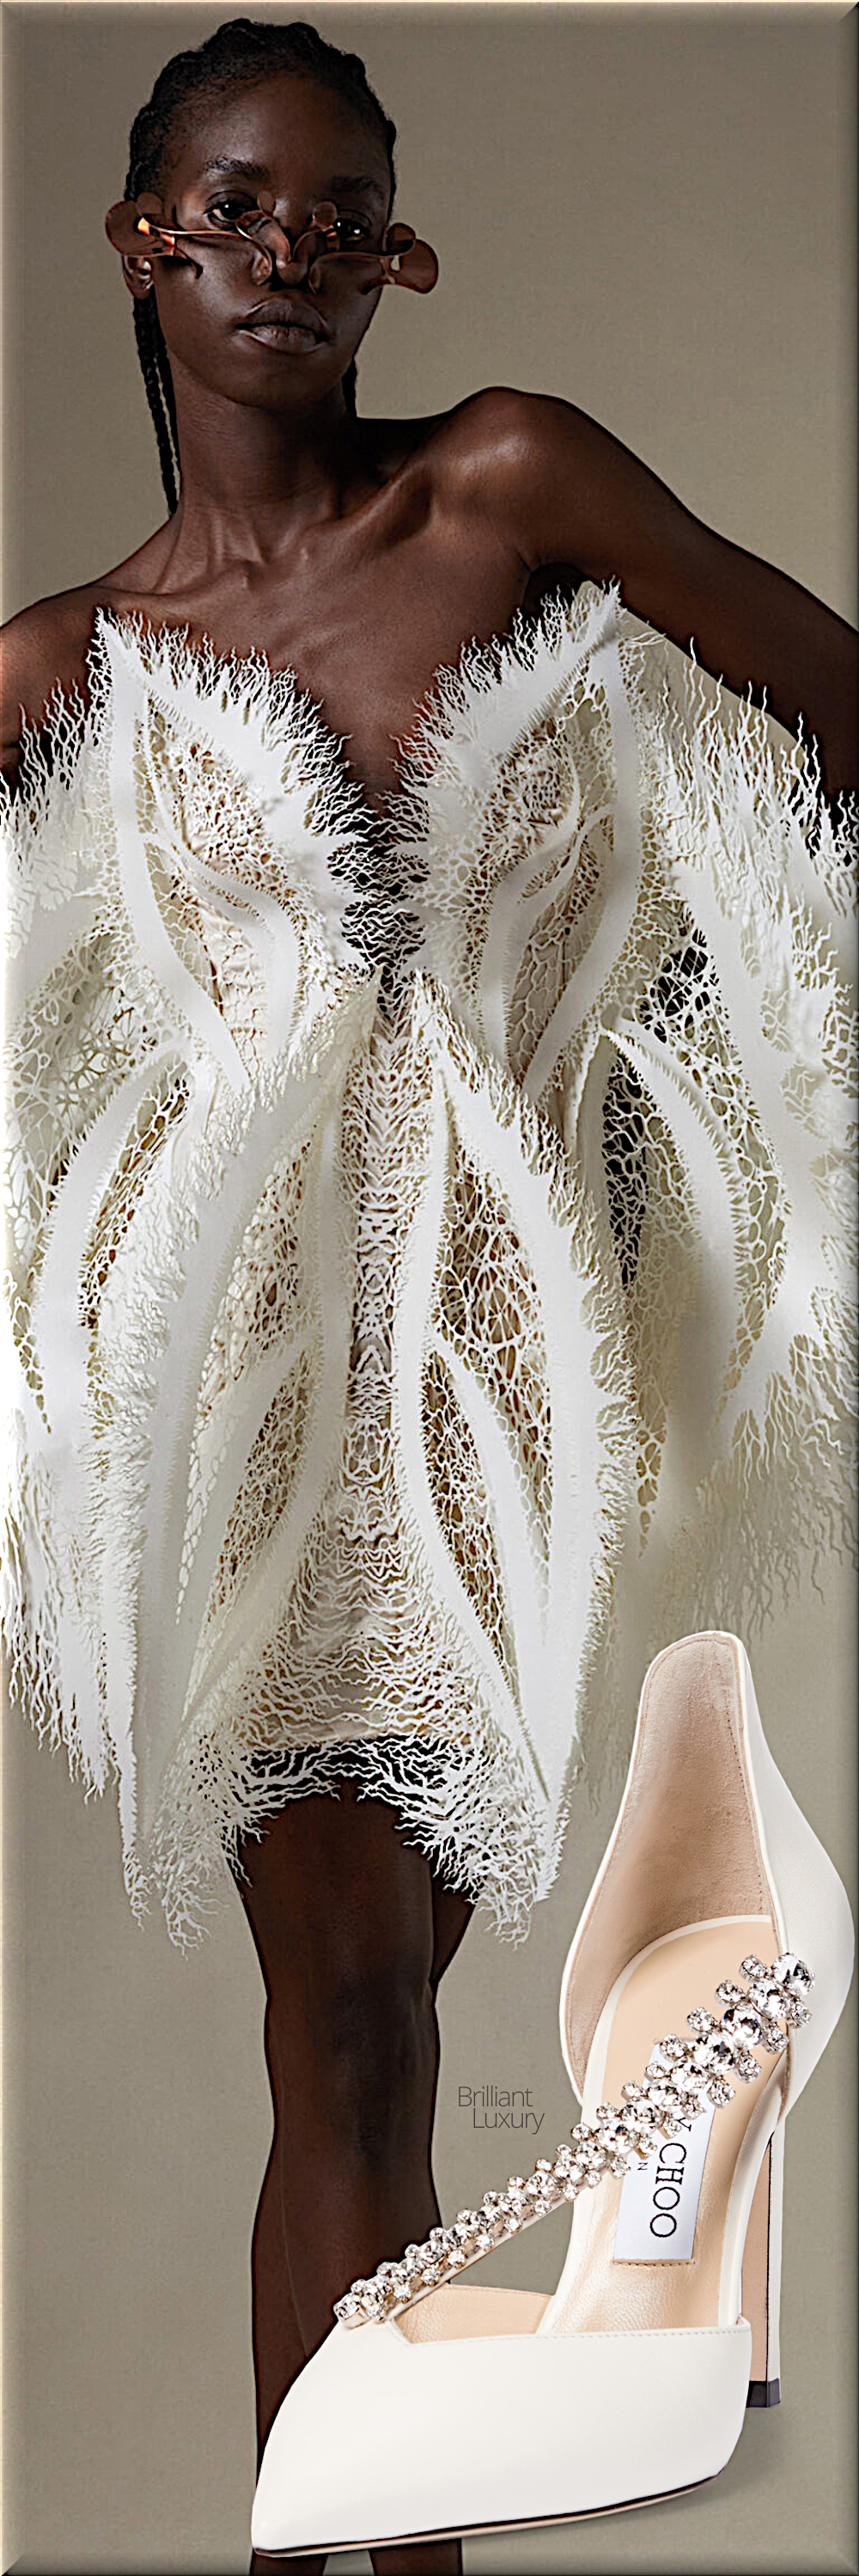 Iris van Herpen white couture gown fall 2021 & Jimmy Choo white Bee bejeweled leather pumps #fashion #brilliantluxury